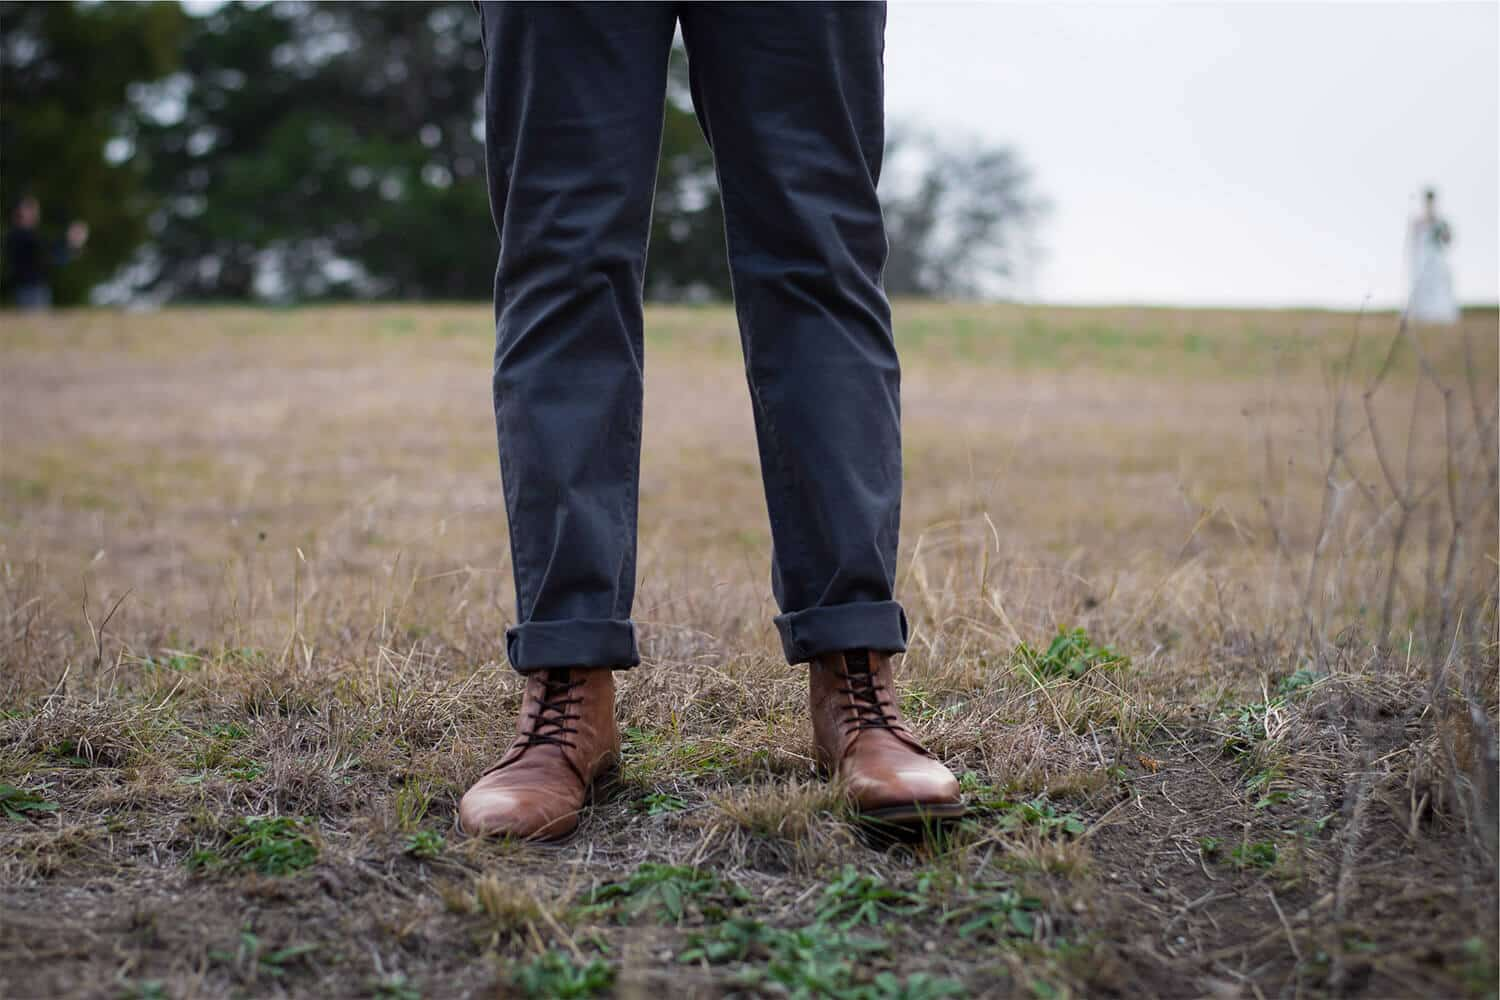 Boots For Any Style: A Complete Guide On Wearing And Maintaining Boots